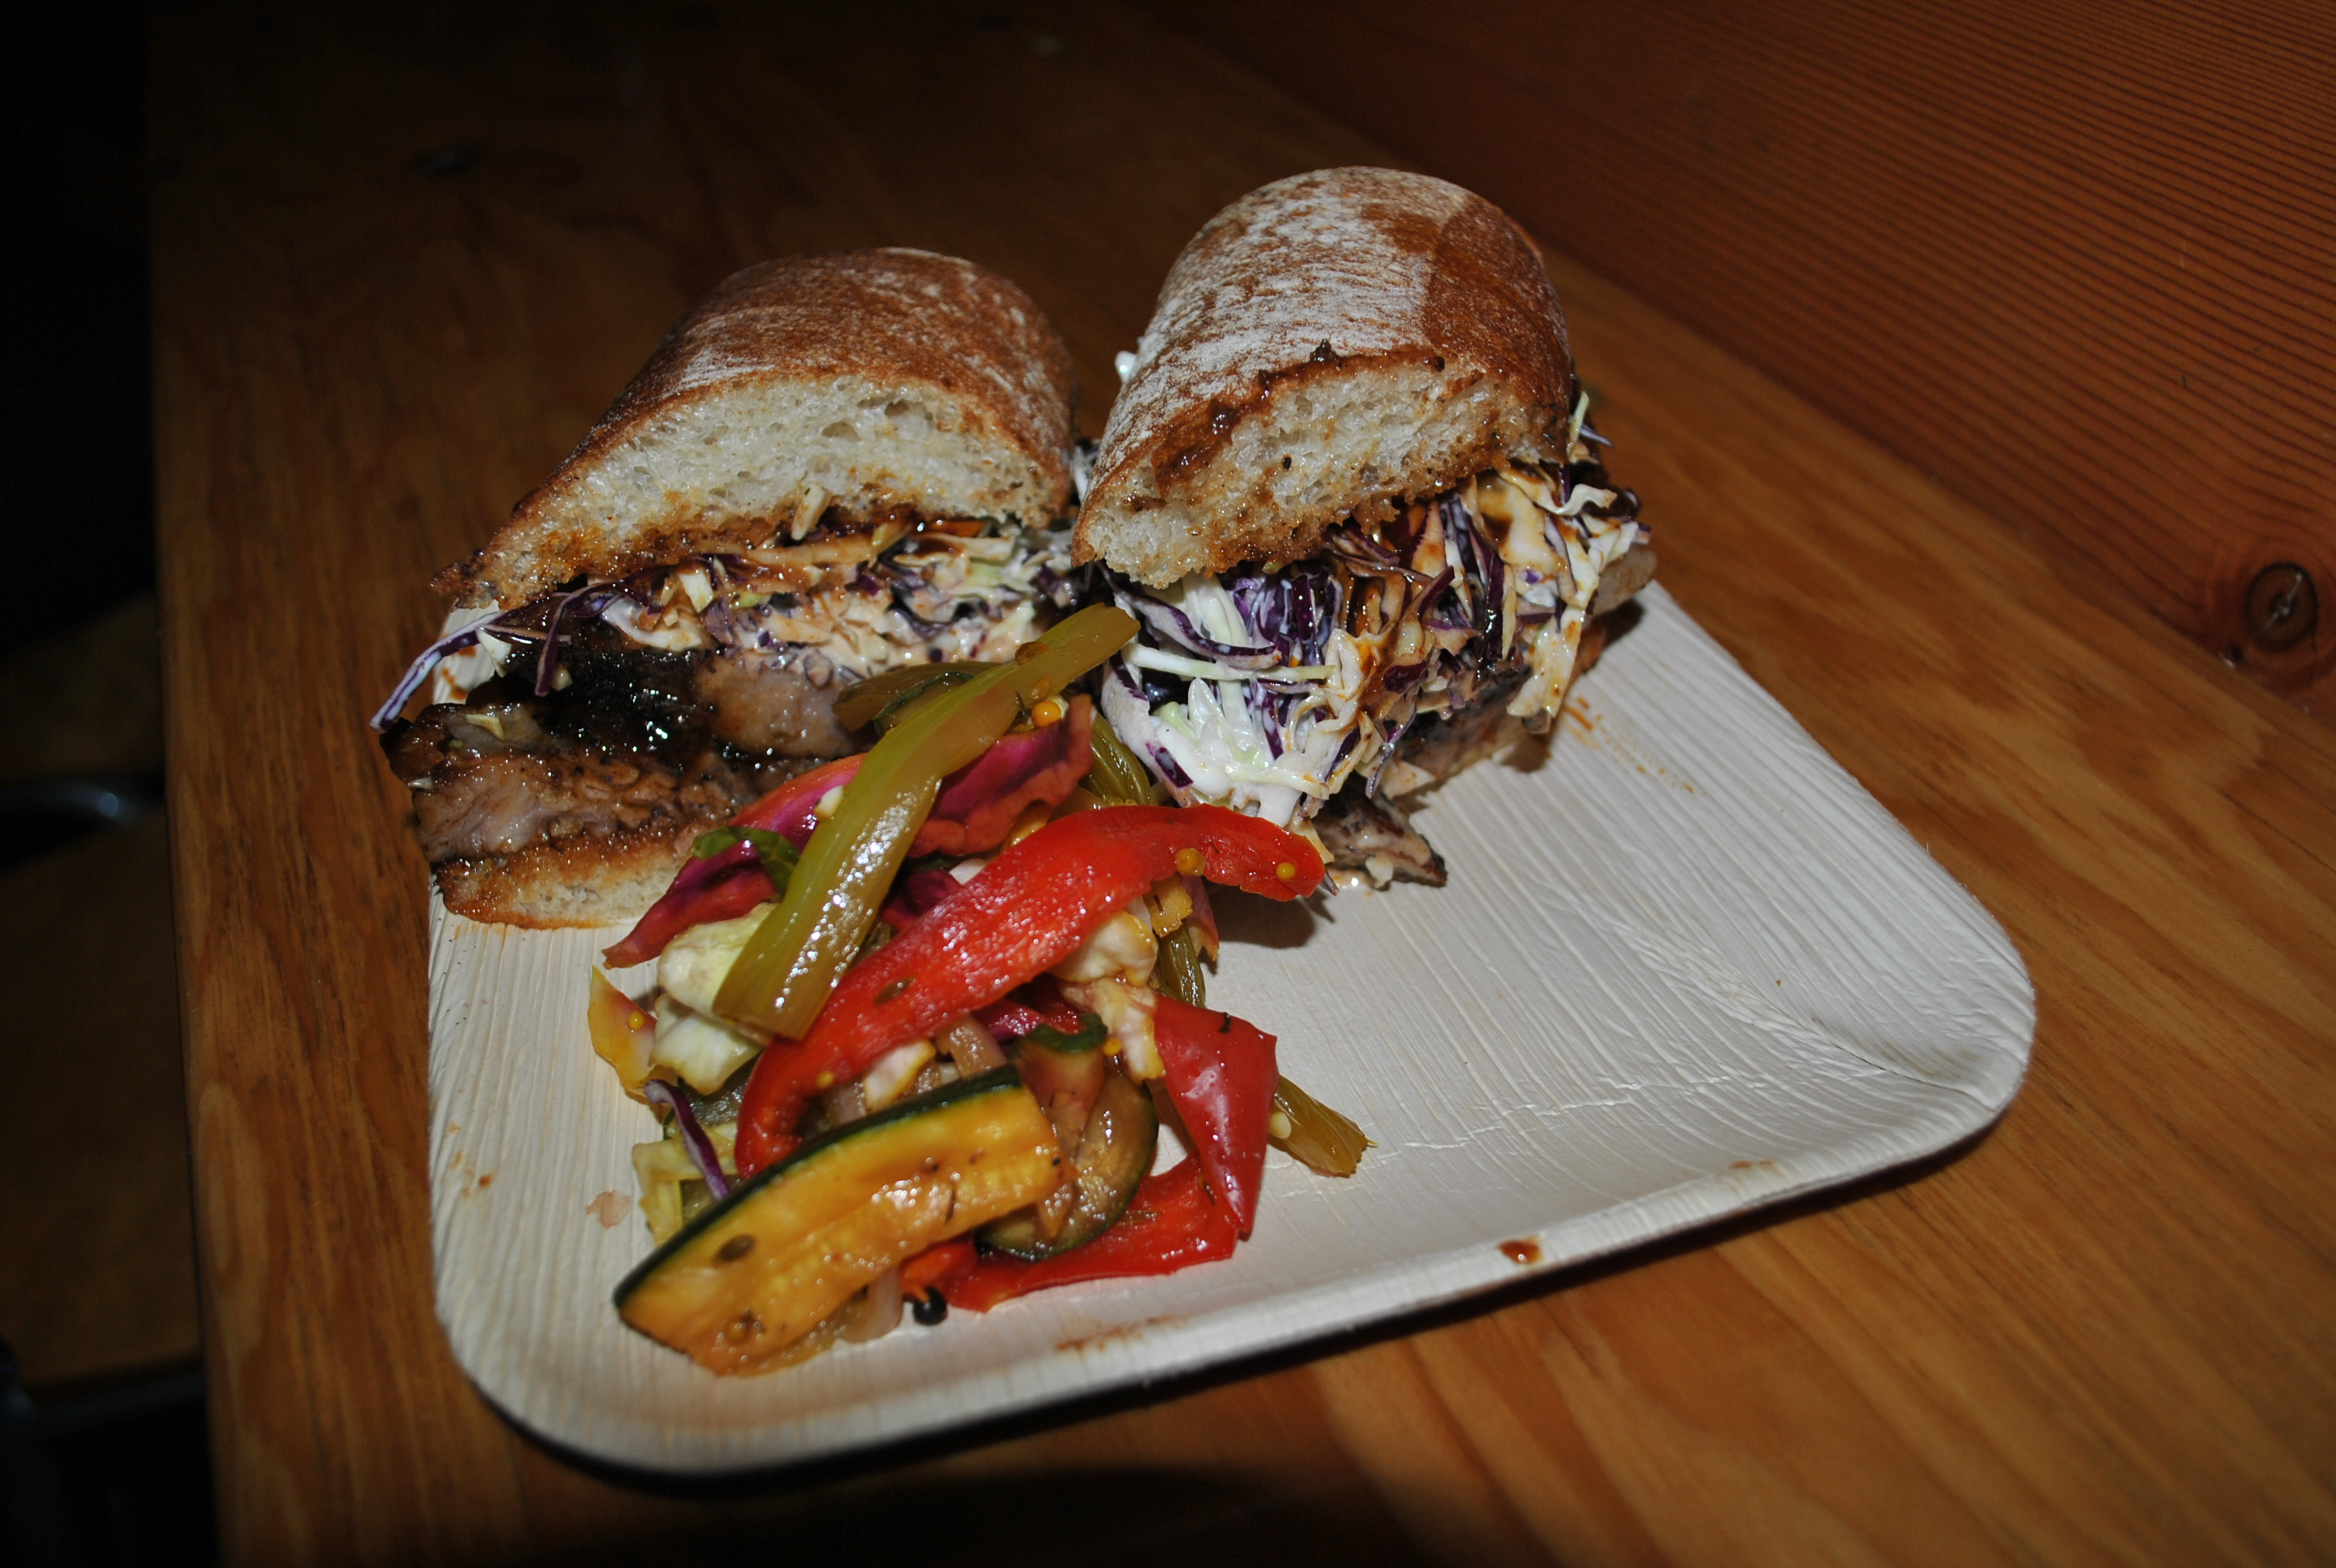 smoked-brisket-sandwich-served-with-pickled-vegetables